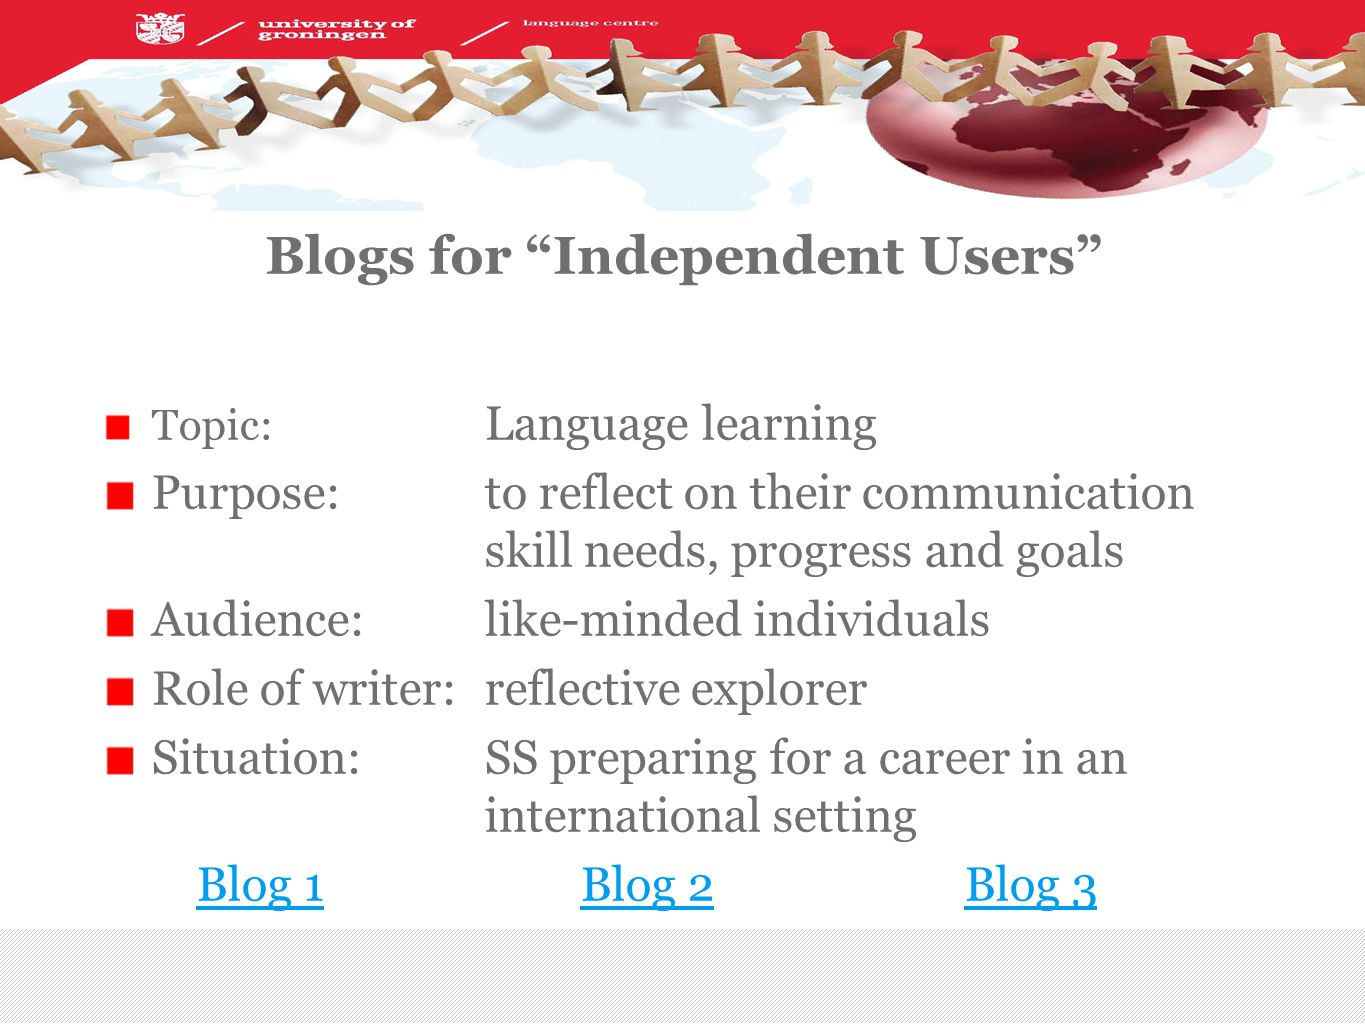 Blogs for Independent Users Topic: Language learning Purpose: to reflect on their communication skill needs, progress and goals Audience:like-minded individuals Role of writer:reflective explorer Situation:SS preparing for a career in an international setting Blog 1Blog 2Blog 3